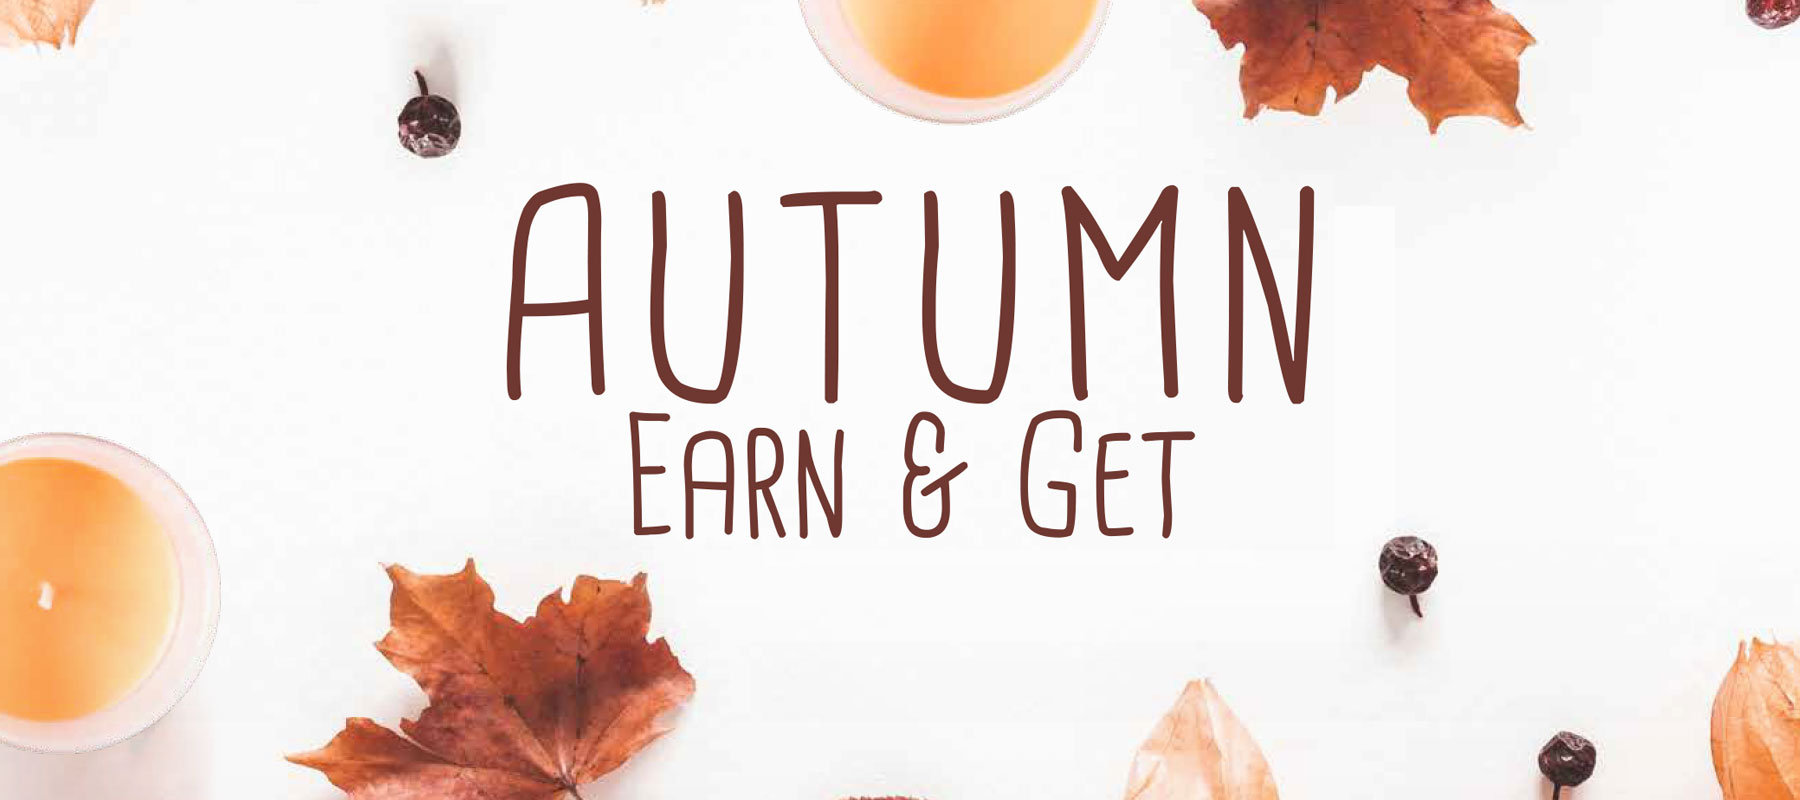 Autumn Earn & Get